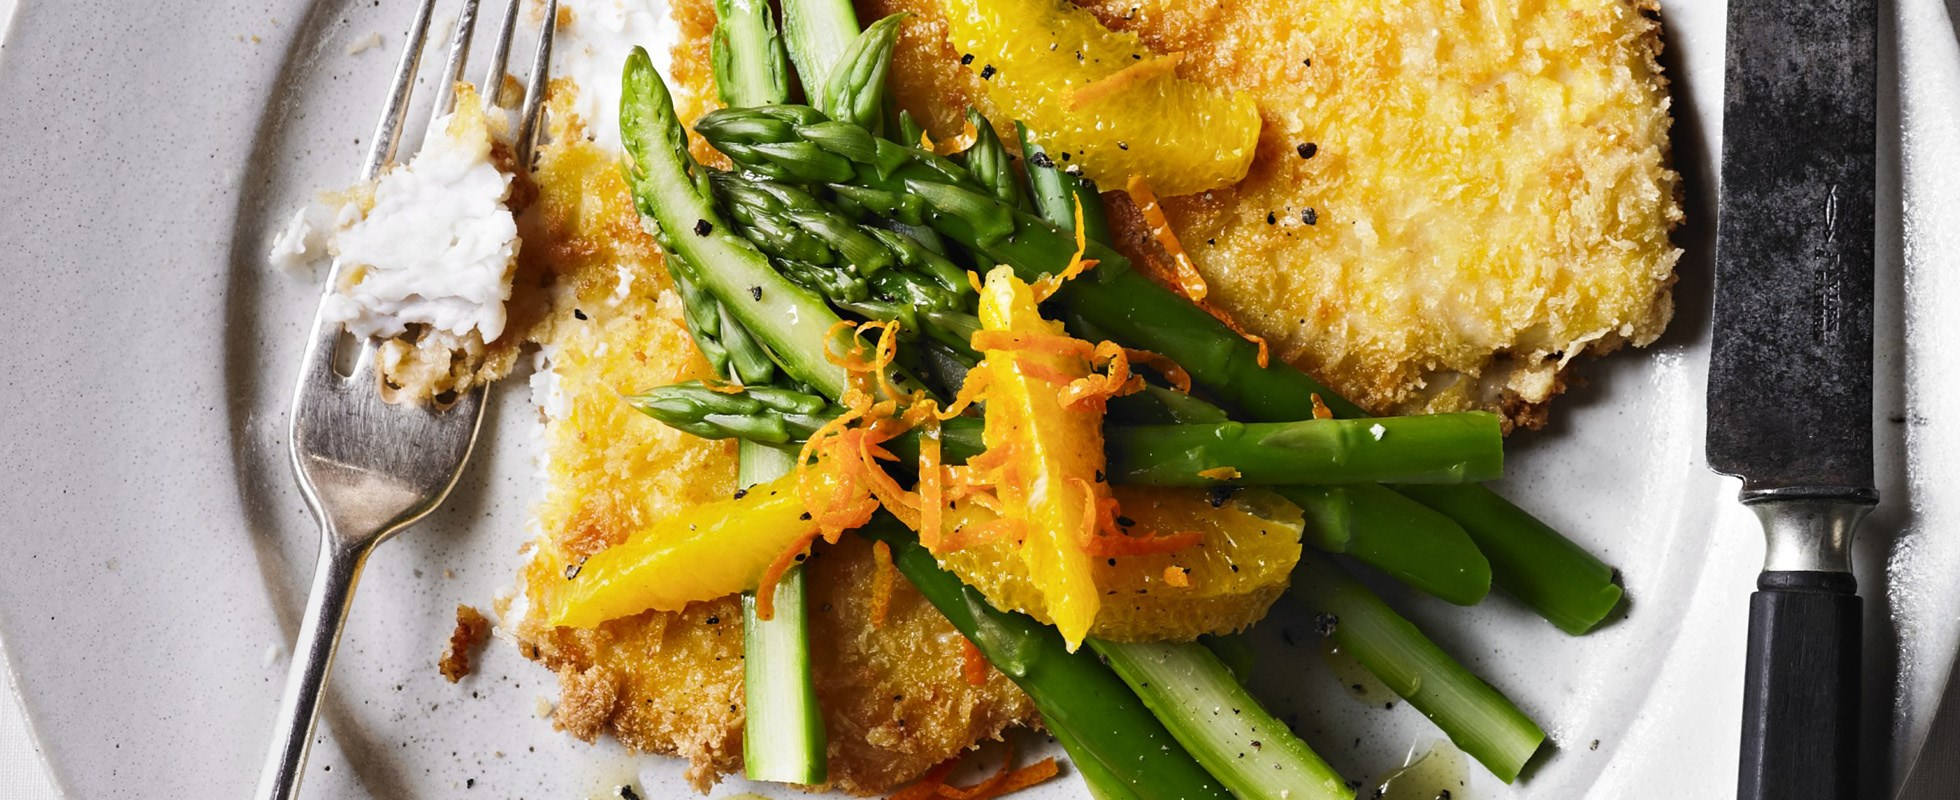 Crumbed haddock with asparagus salad recipe olive magazine for Fish and asparagus